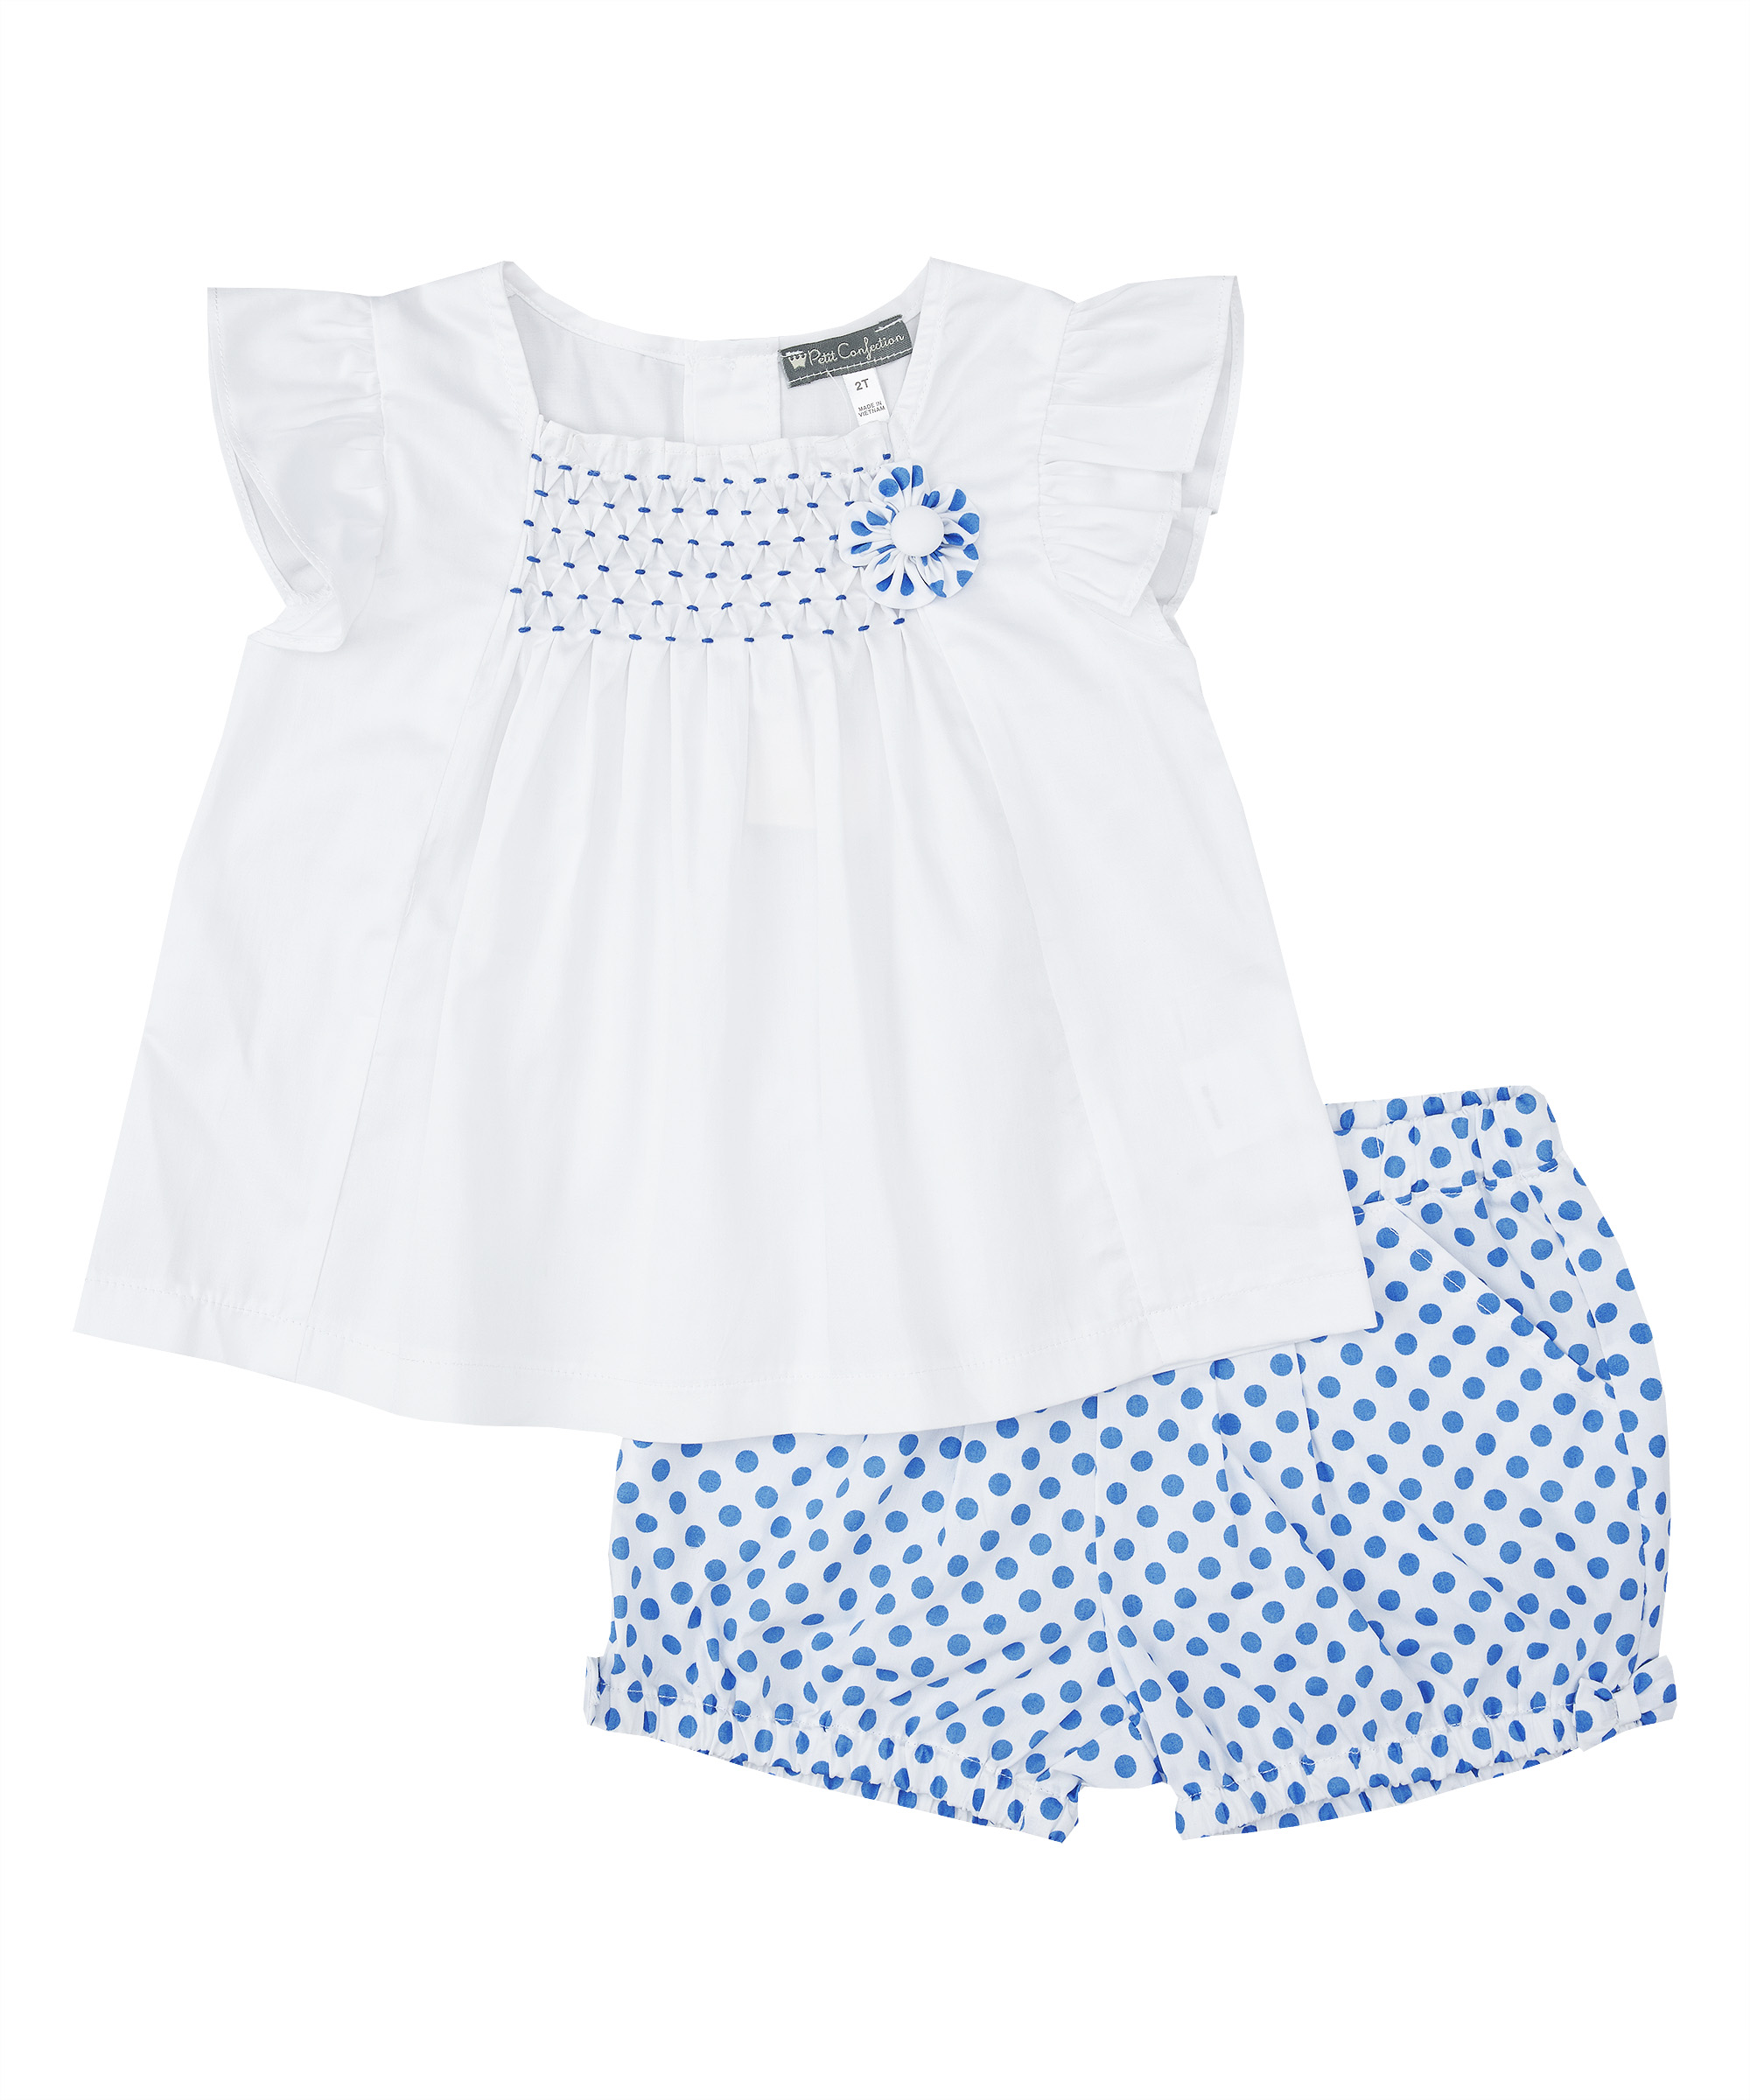 Blue Smocked Top  & Polka Dot Bloomers